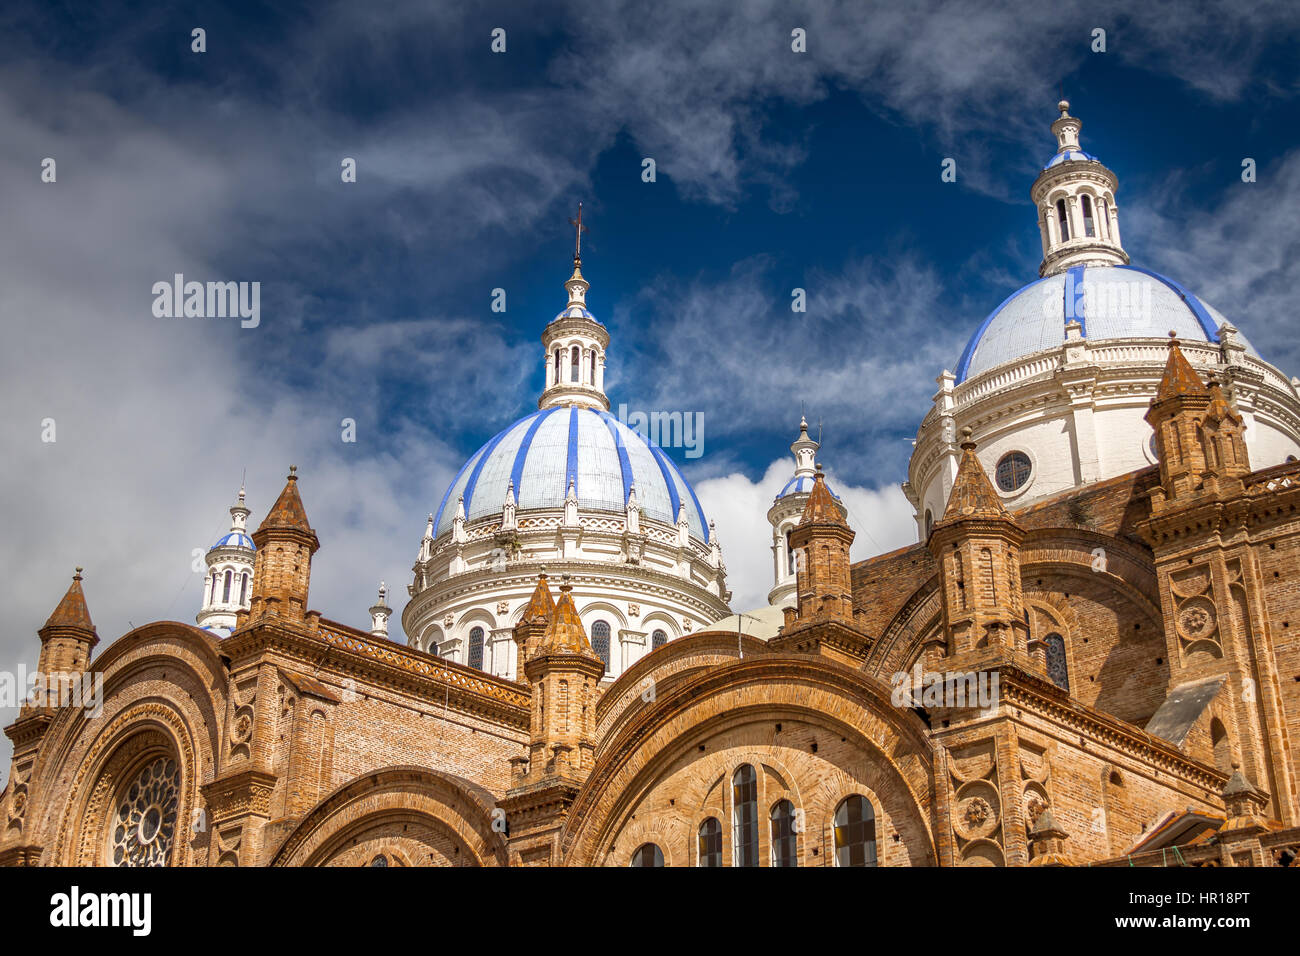 Domes of Cuenca Cathedral, Ecuador - Stock Image